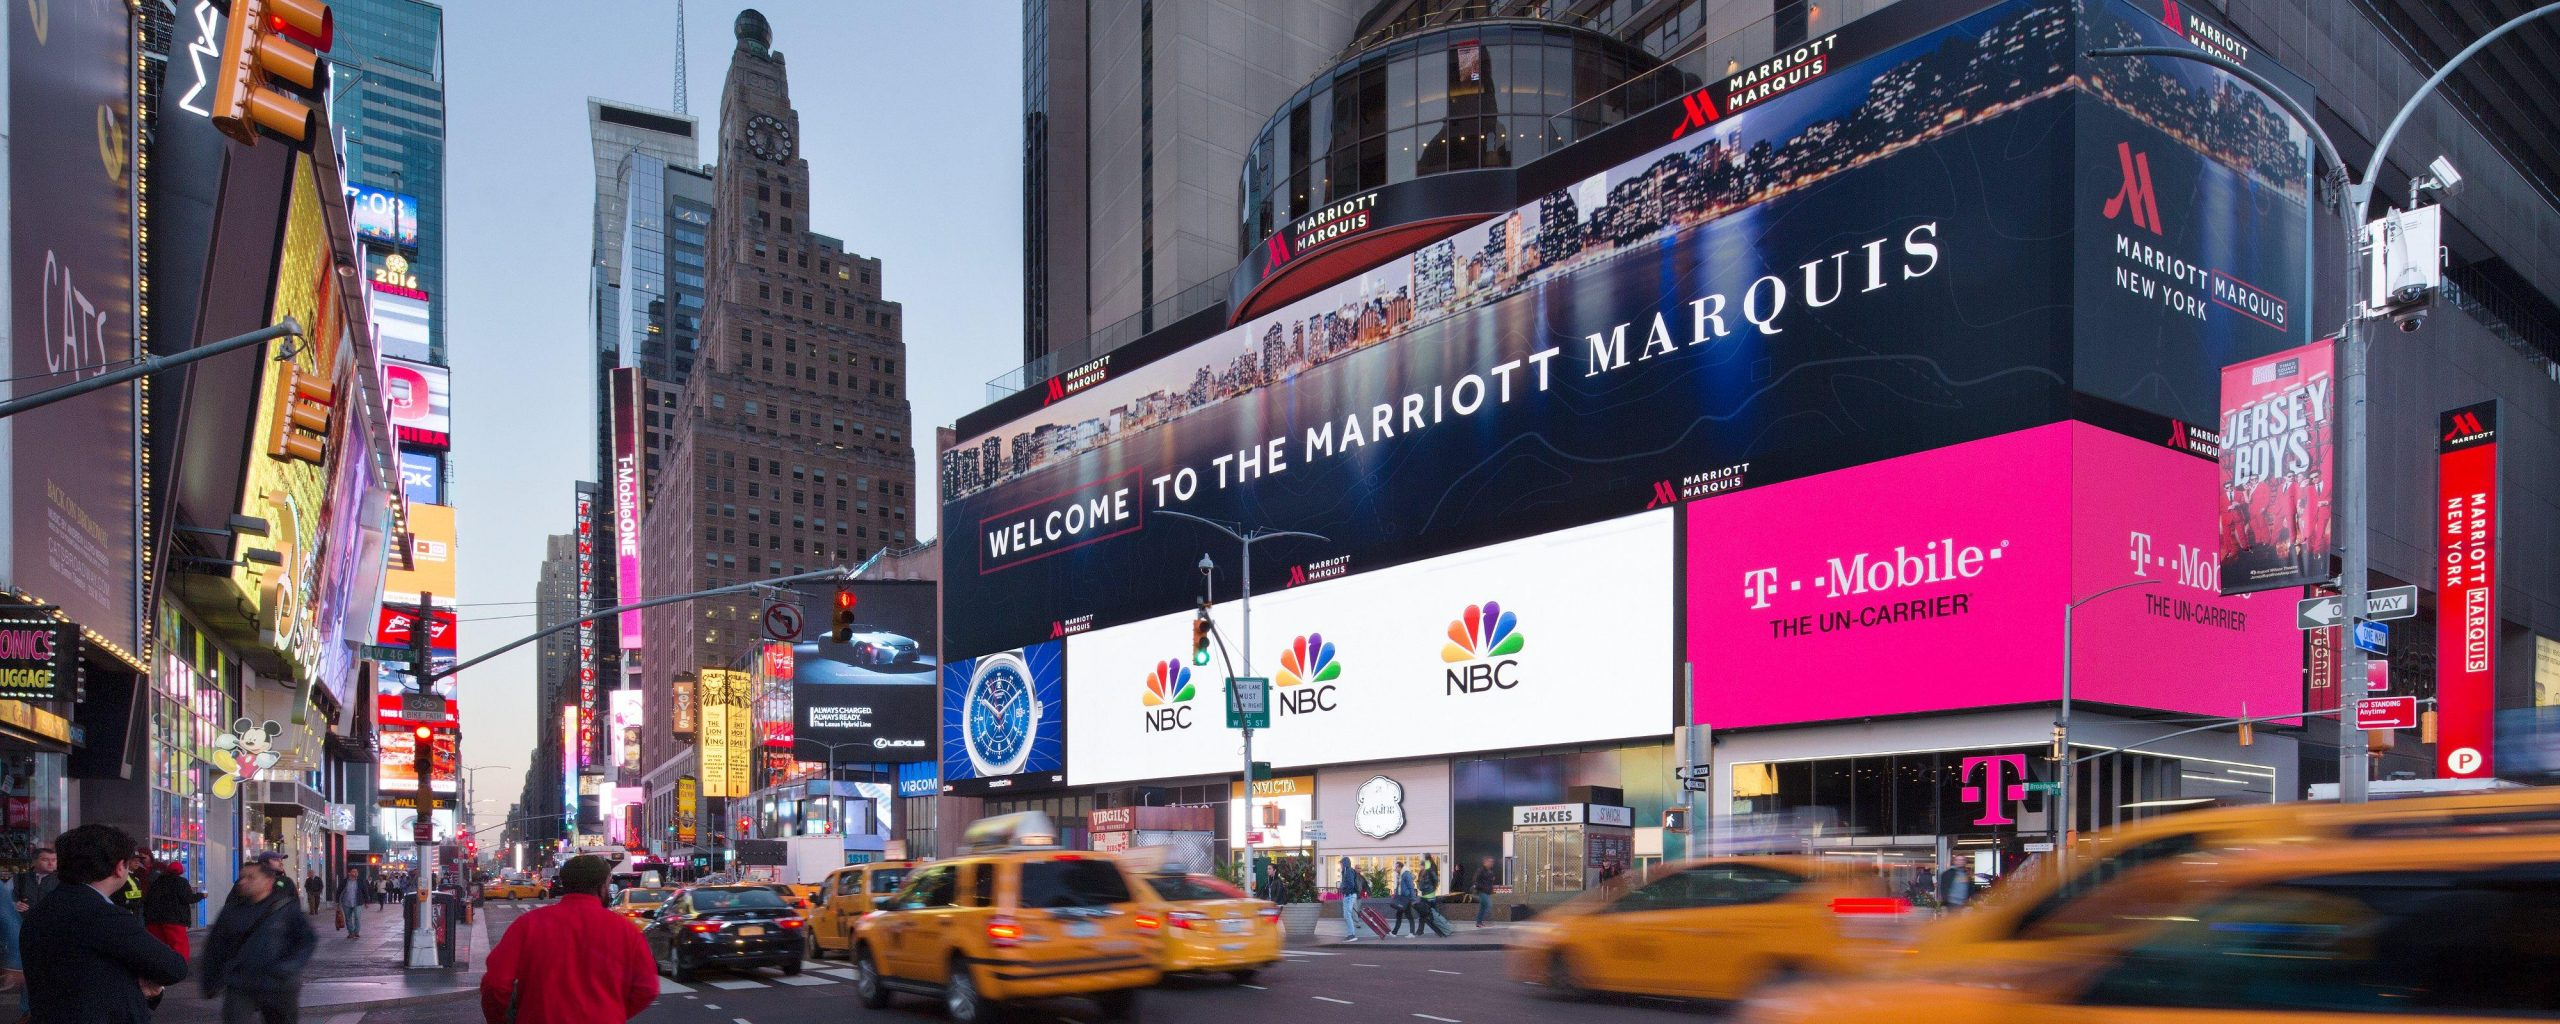 New York Marriott Marquis - Luxury Hotels To Dwell In New York